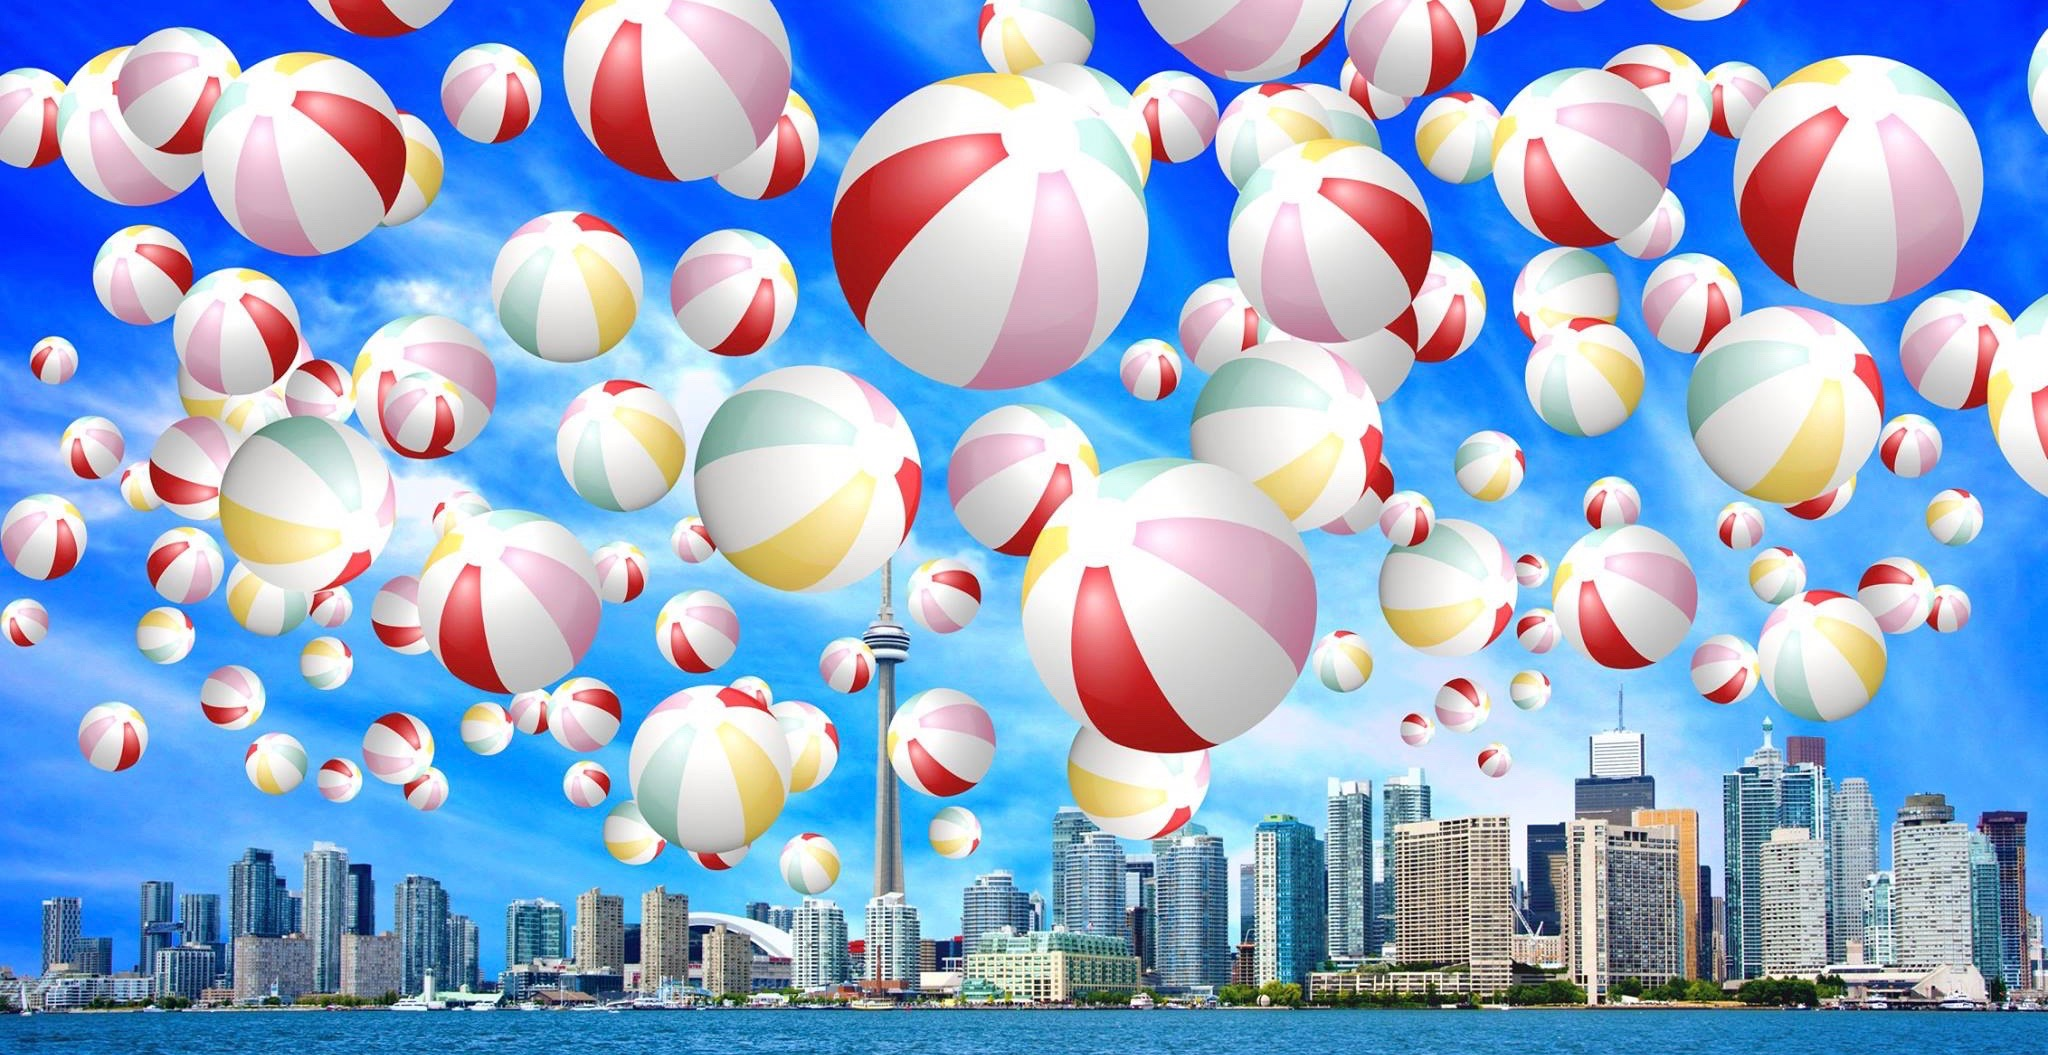 Toronto giant beach ball 1